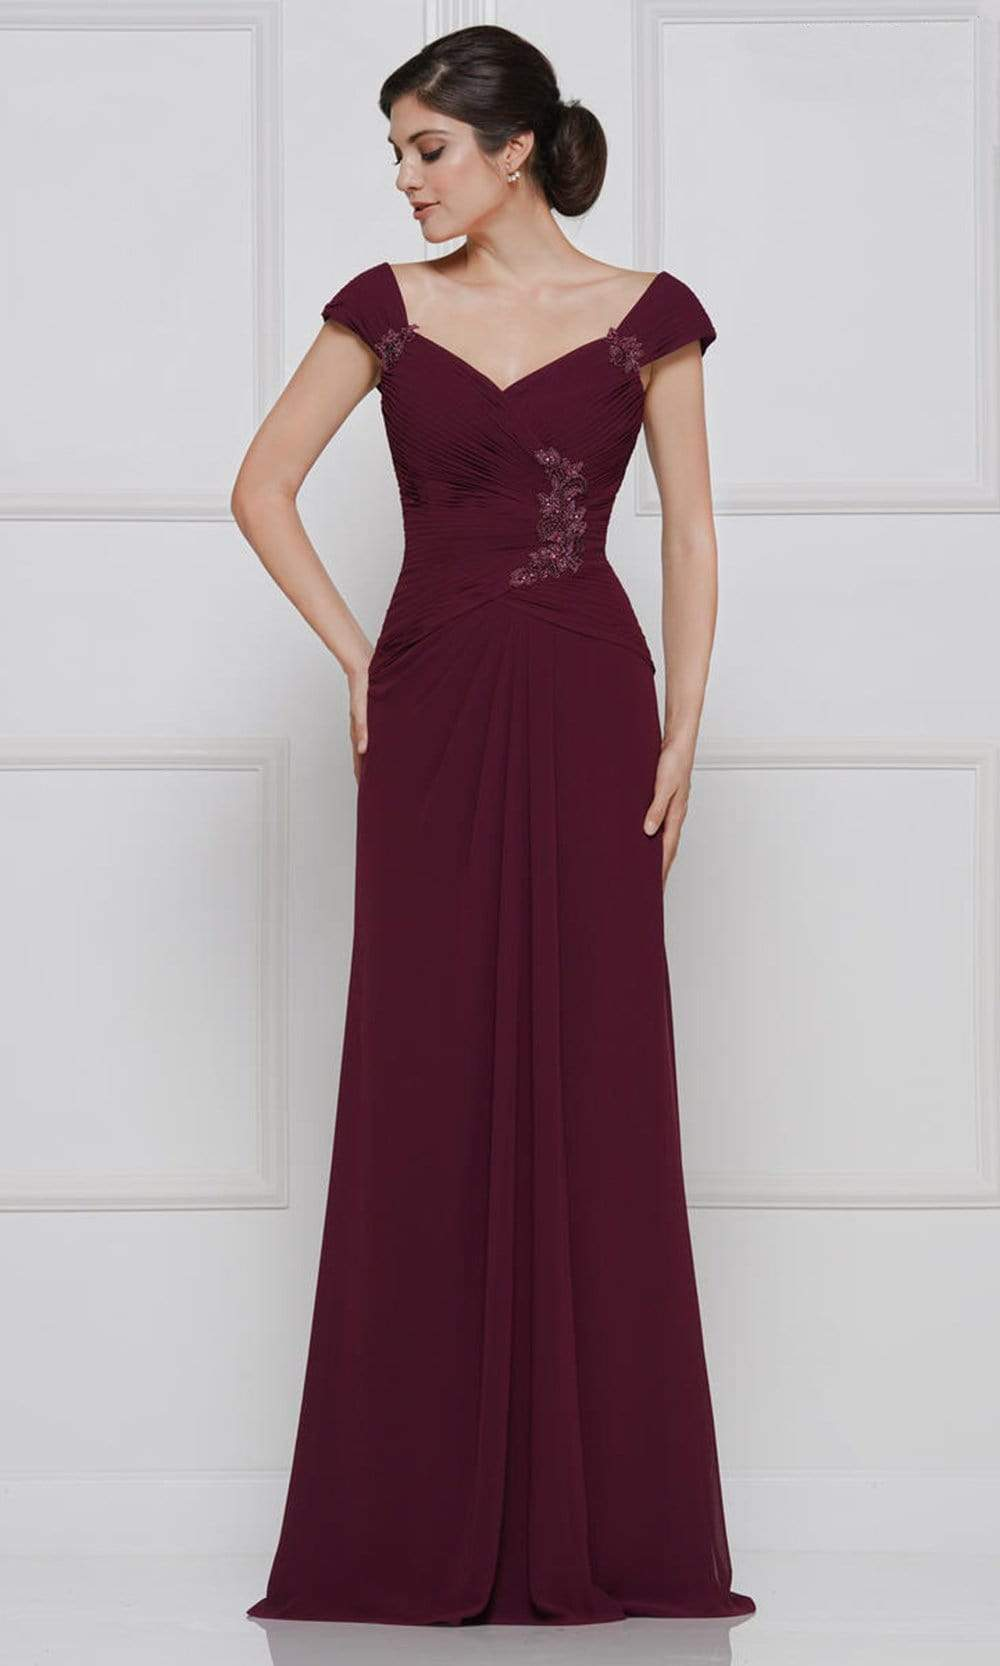 Rina Di Montella - RD2633 Embroidered V Neck Sheath Dress Mother of the Bride Dresses 4 / Burgundy